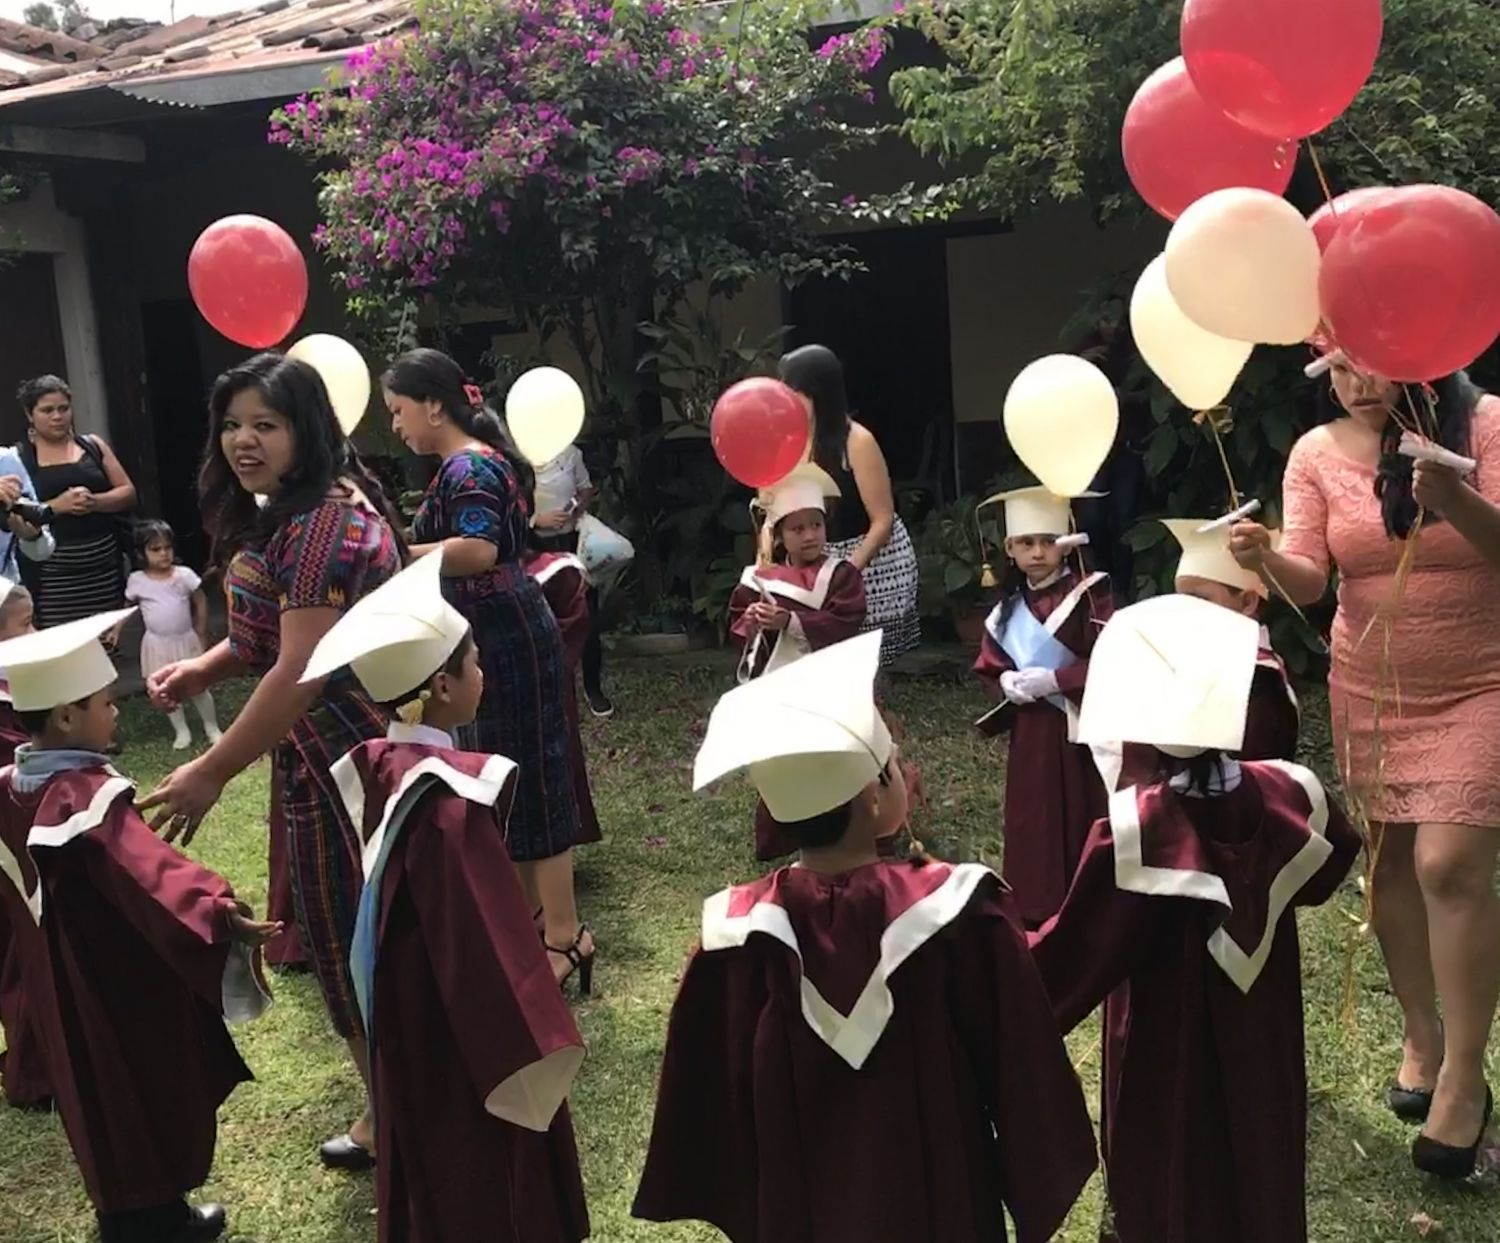 On Wednesday, Nov. 8, 2017, Escuela Integrada celebrated graduations for first and sixth grade. After diplomas were awarded, first grade students released balloons into the sky, each one carrying a small piece of paper with their dreams and wishes for the future.